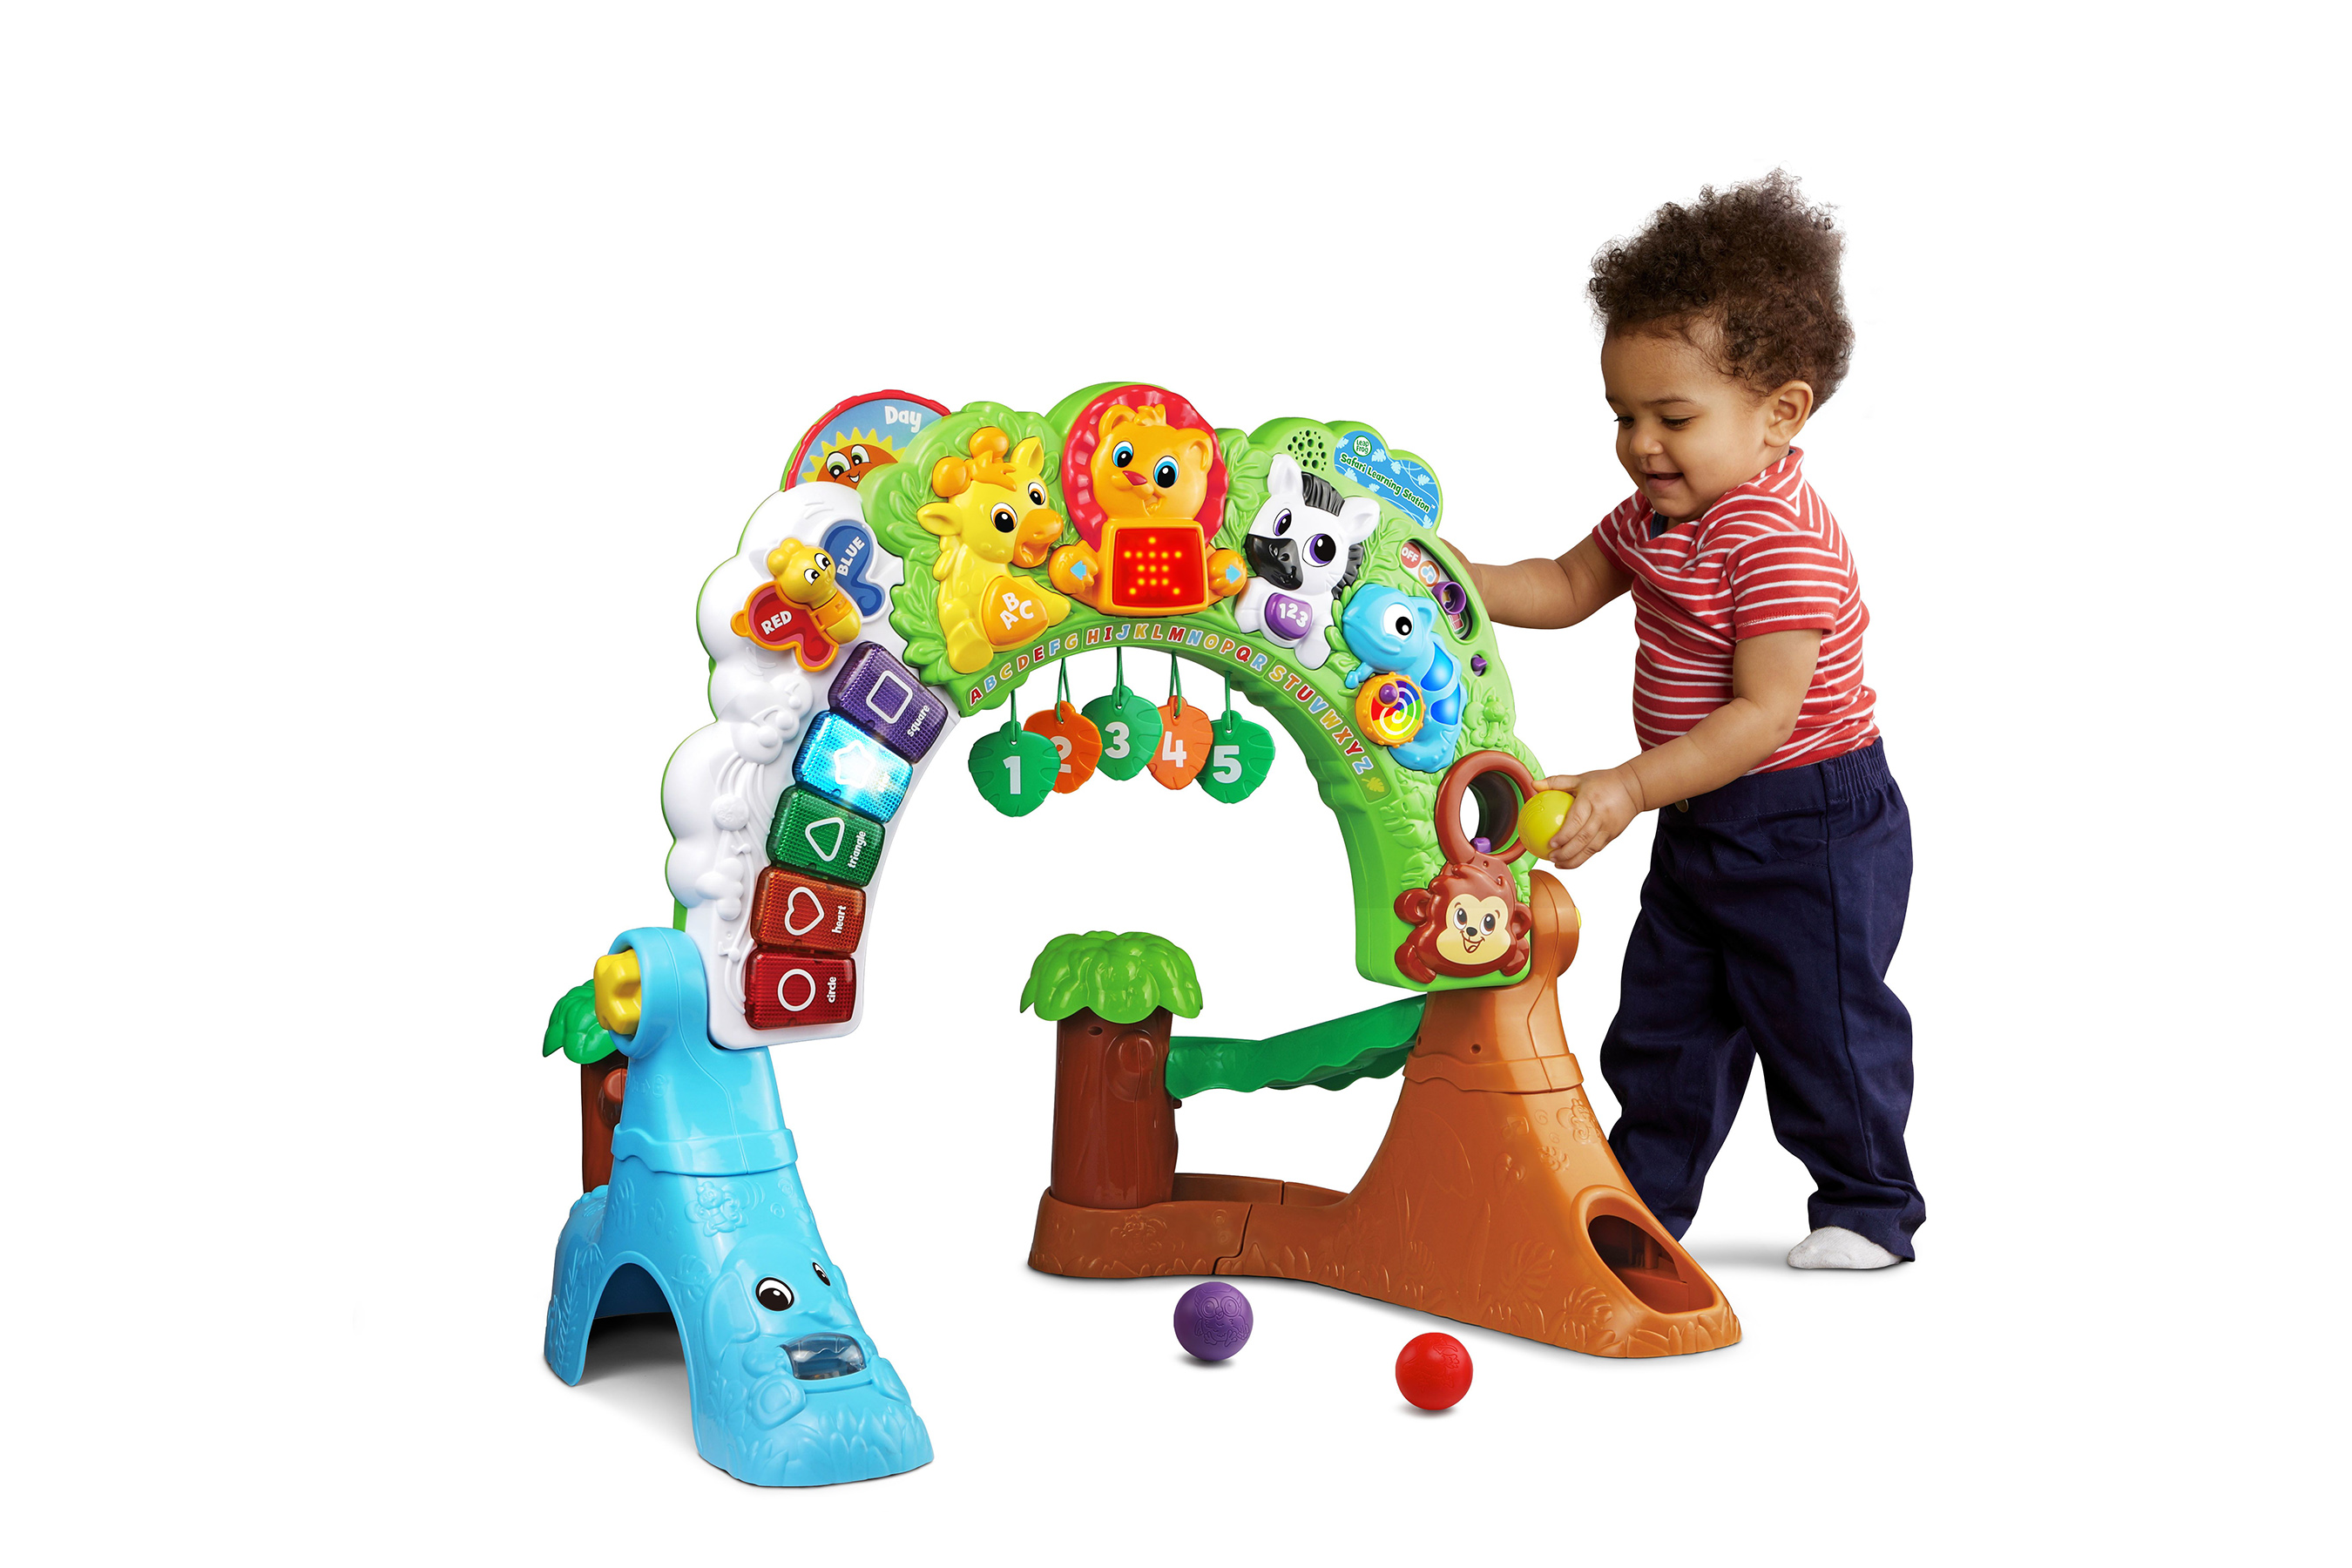 leapfrog u00ae expands infant and preschool collection with new learning toys